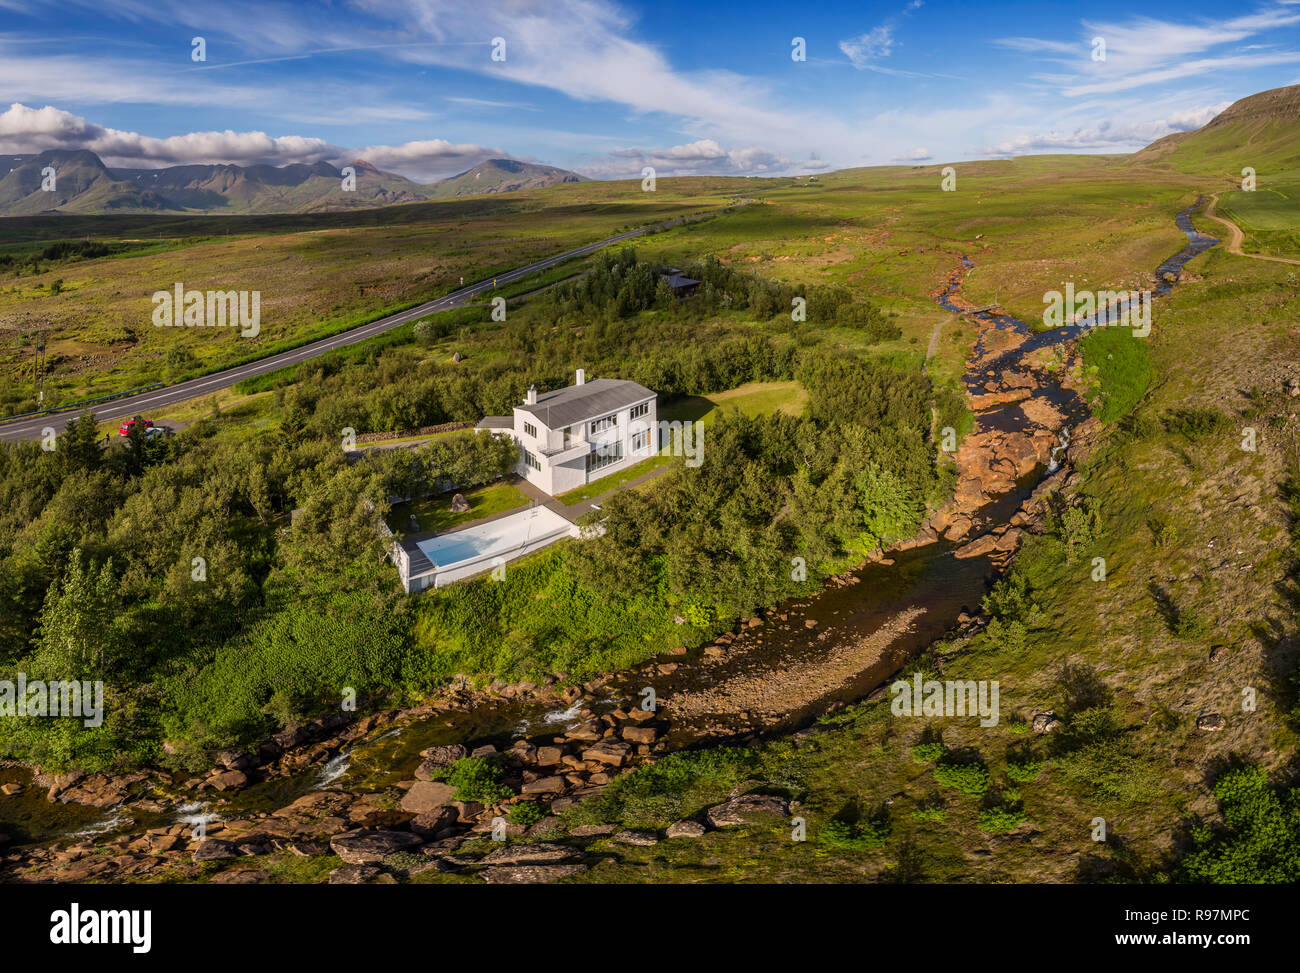 Halldor Laxness museum, Mosfellsbaer, Iceland. This image is shot using a drone. - Stock Image